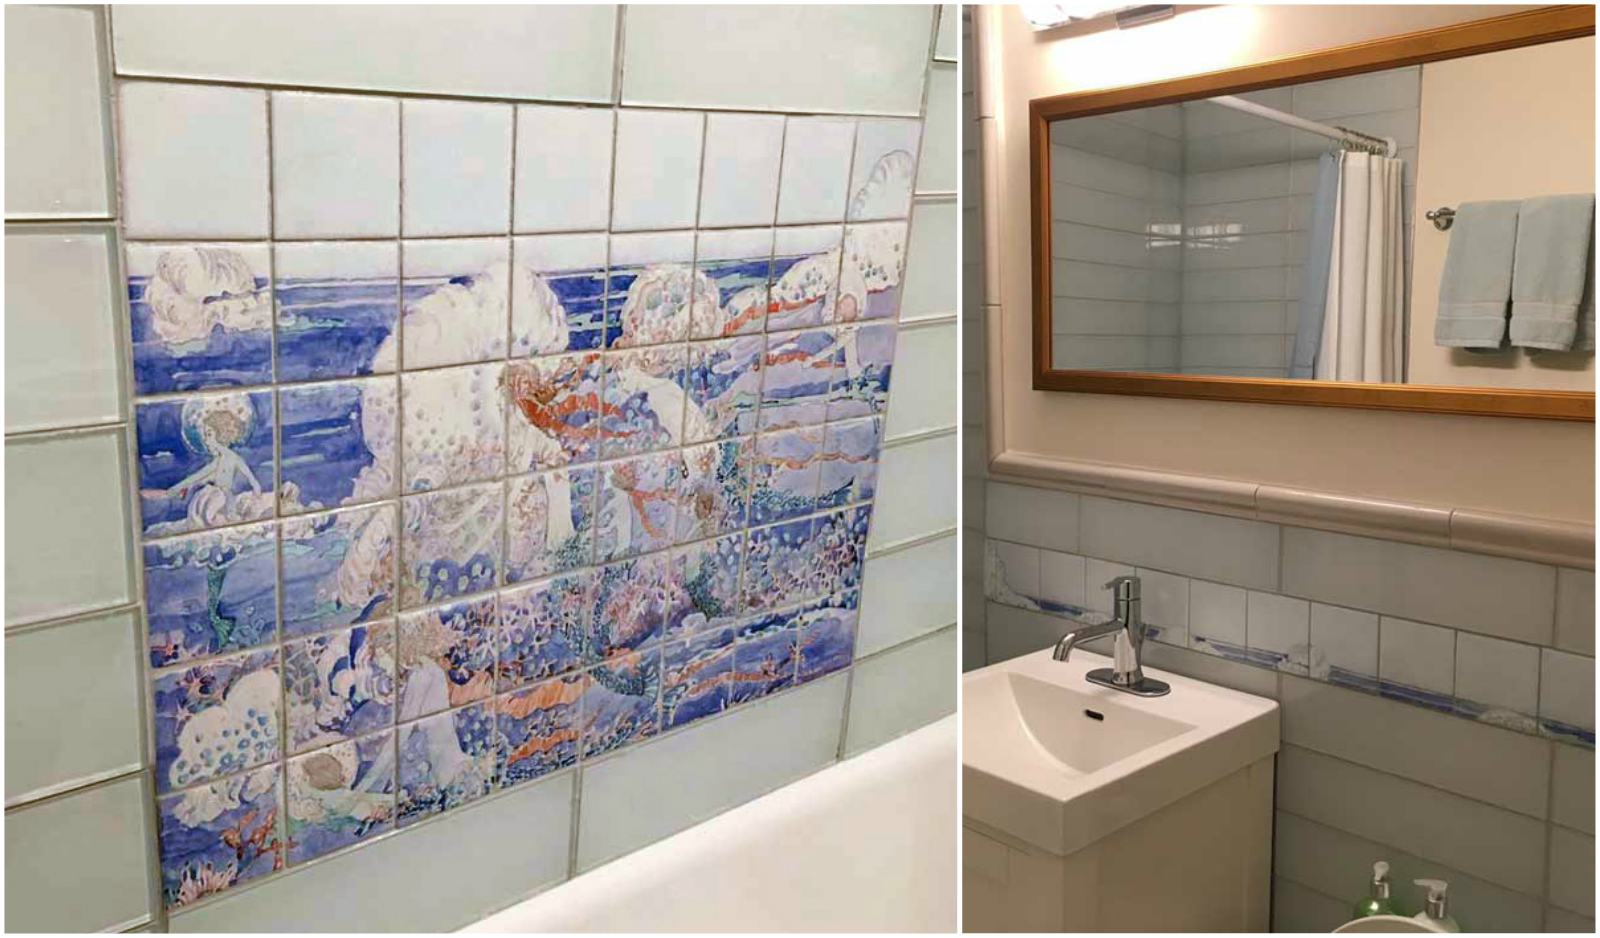 Glasgow Arts & Crafts bathroom in New York featuring Jessie M. King Mermaids tile mural.